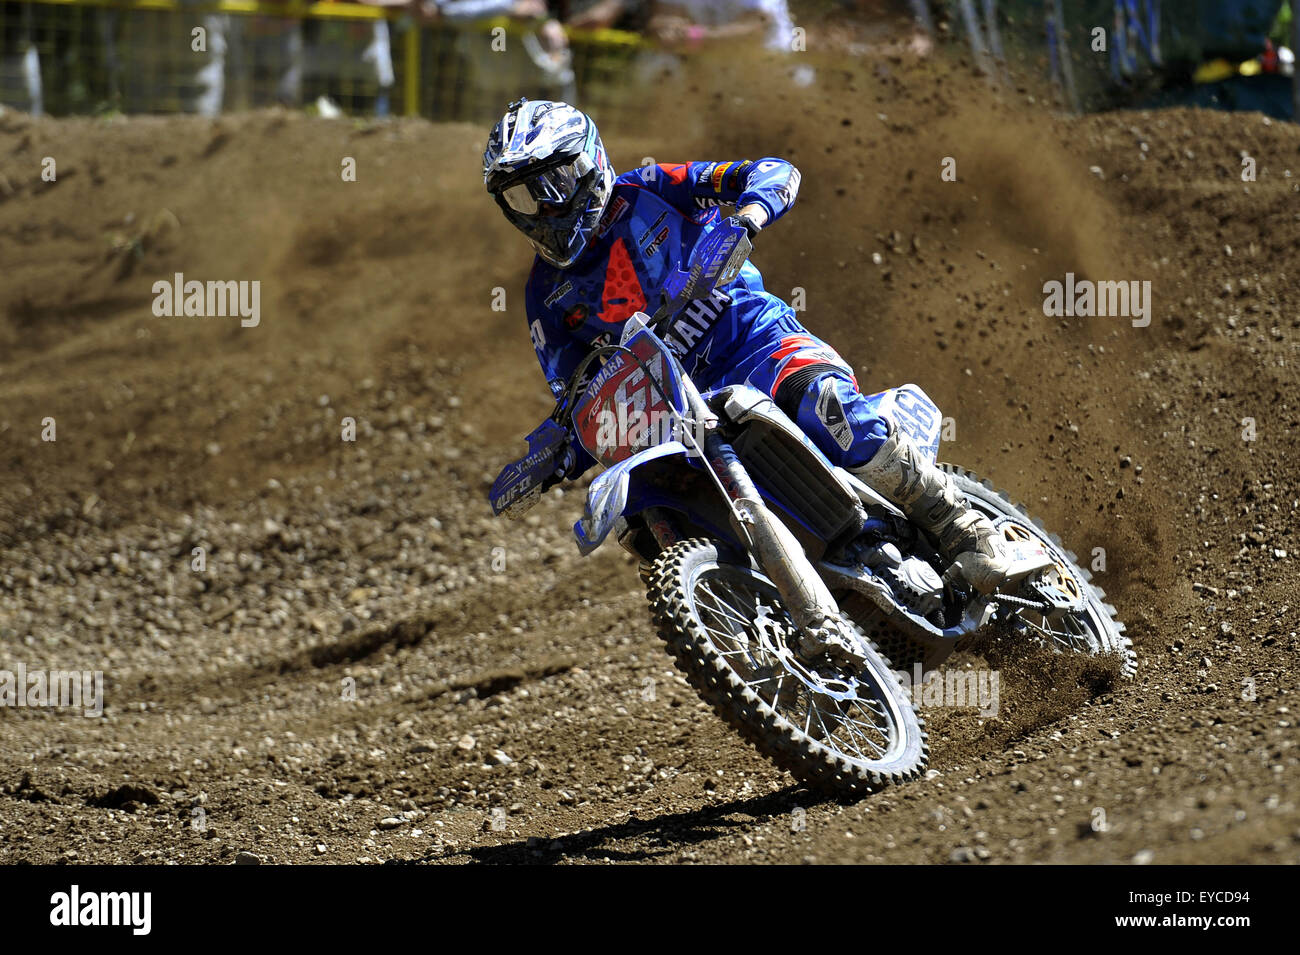 Loket, Czech Republic. 26th July, 2015. Romain Febvre from France competes during Motocross FIM world championship Stock Photo